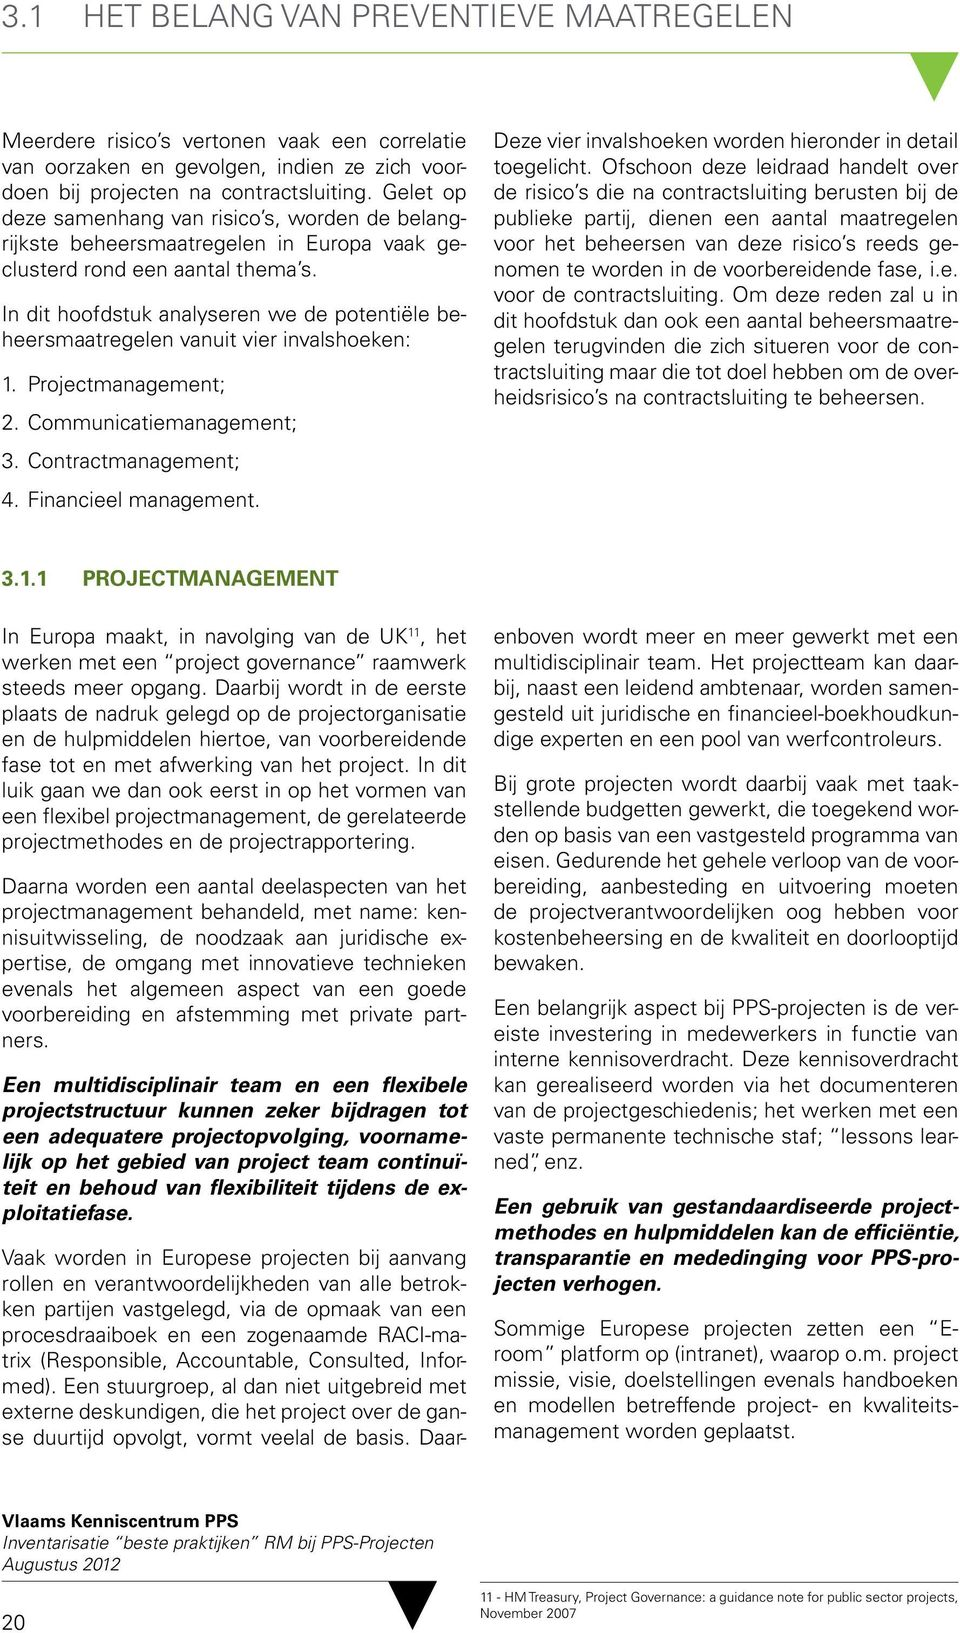 In dit hoofdstuk analyseren we de potentiële beheersmaatregelen vanuit vier invalshoeken: 1. Projectmanagement; 2. Communicatiemanagement; 3. Contractmanagement; 4. Financieel management.